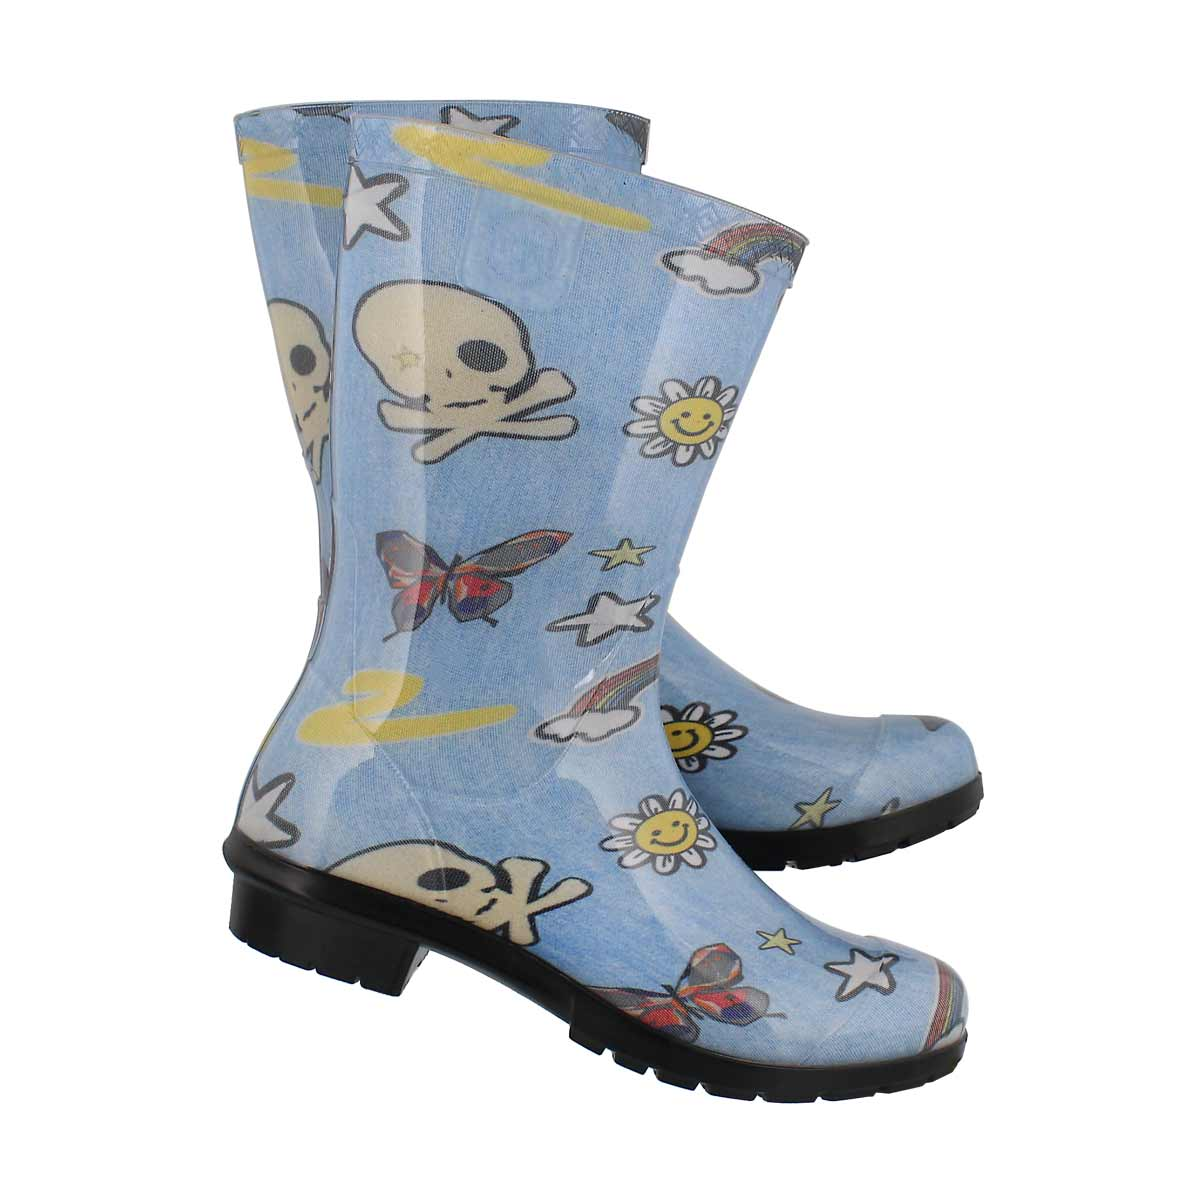 Kds Raana Patches dnm mlt wtpf rain boot